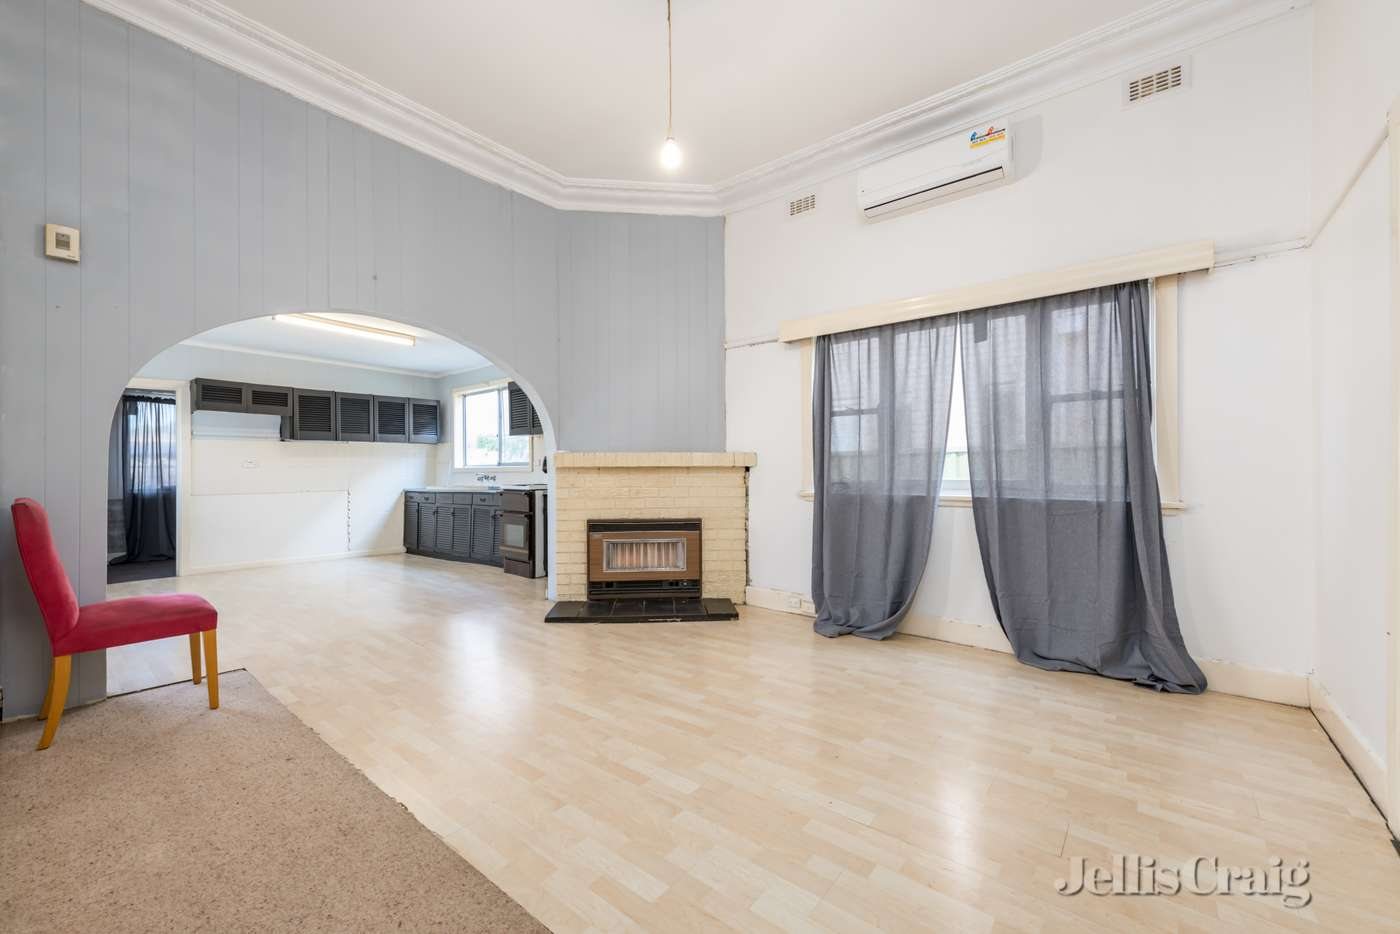 Main view of Homely house listing, 292 Gillies Street, Fairfield VIC 3078